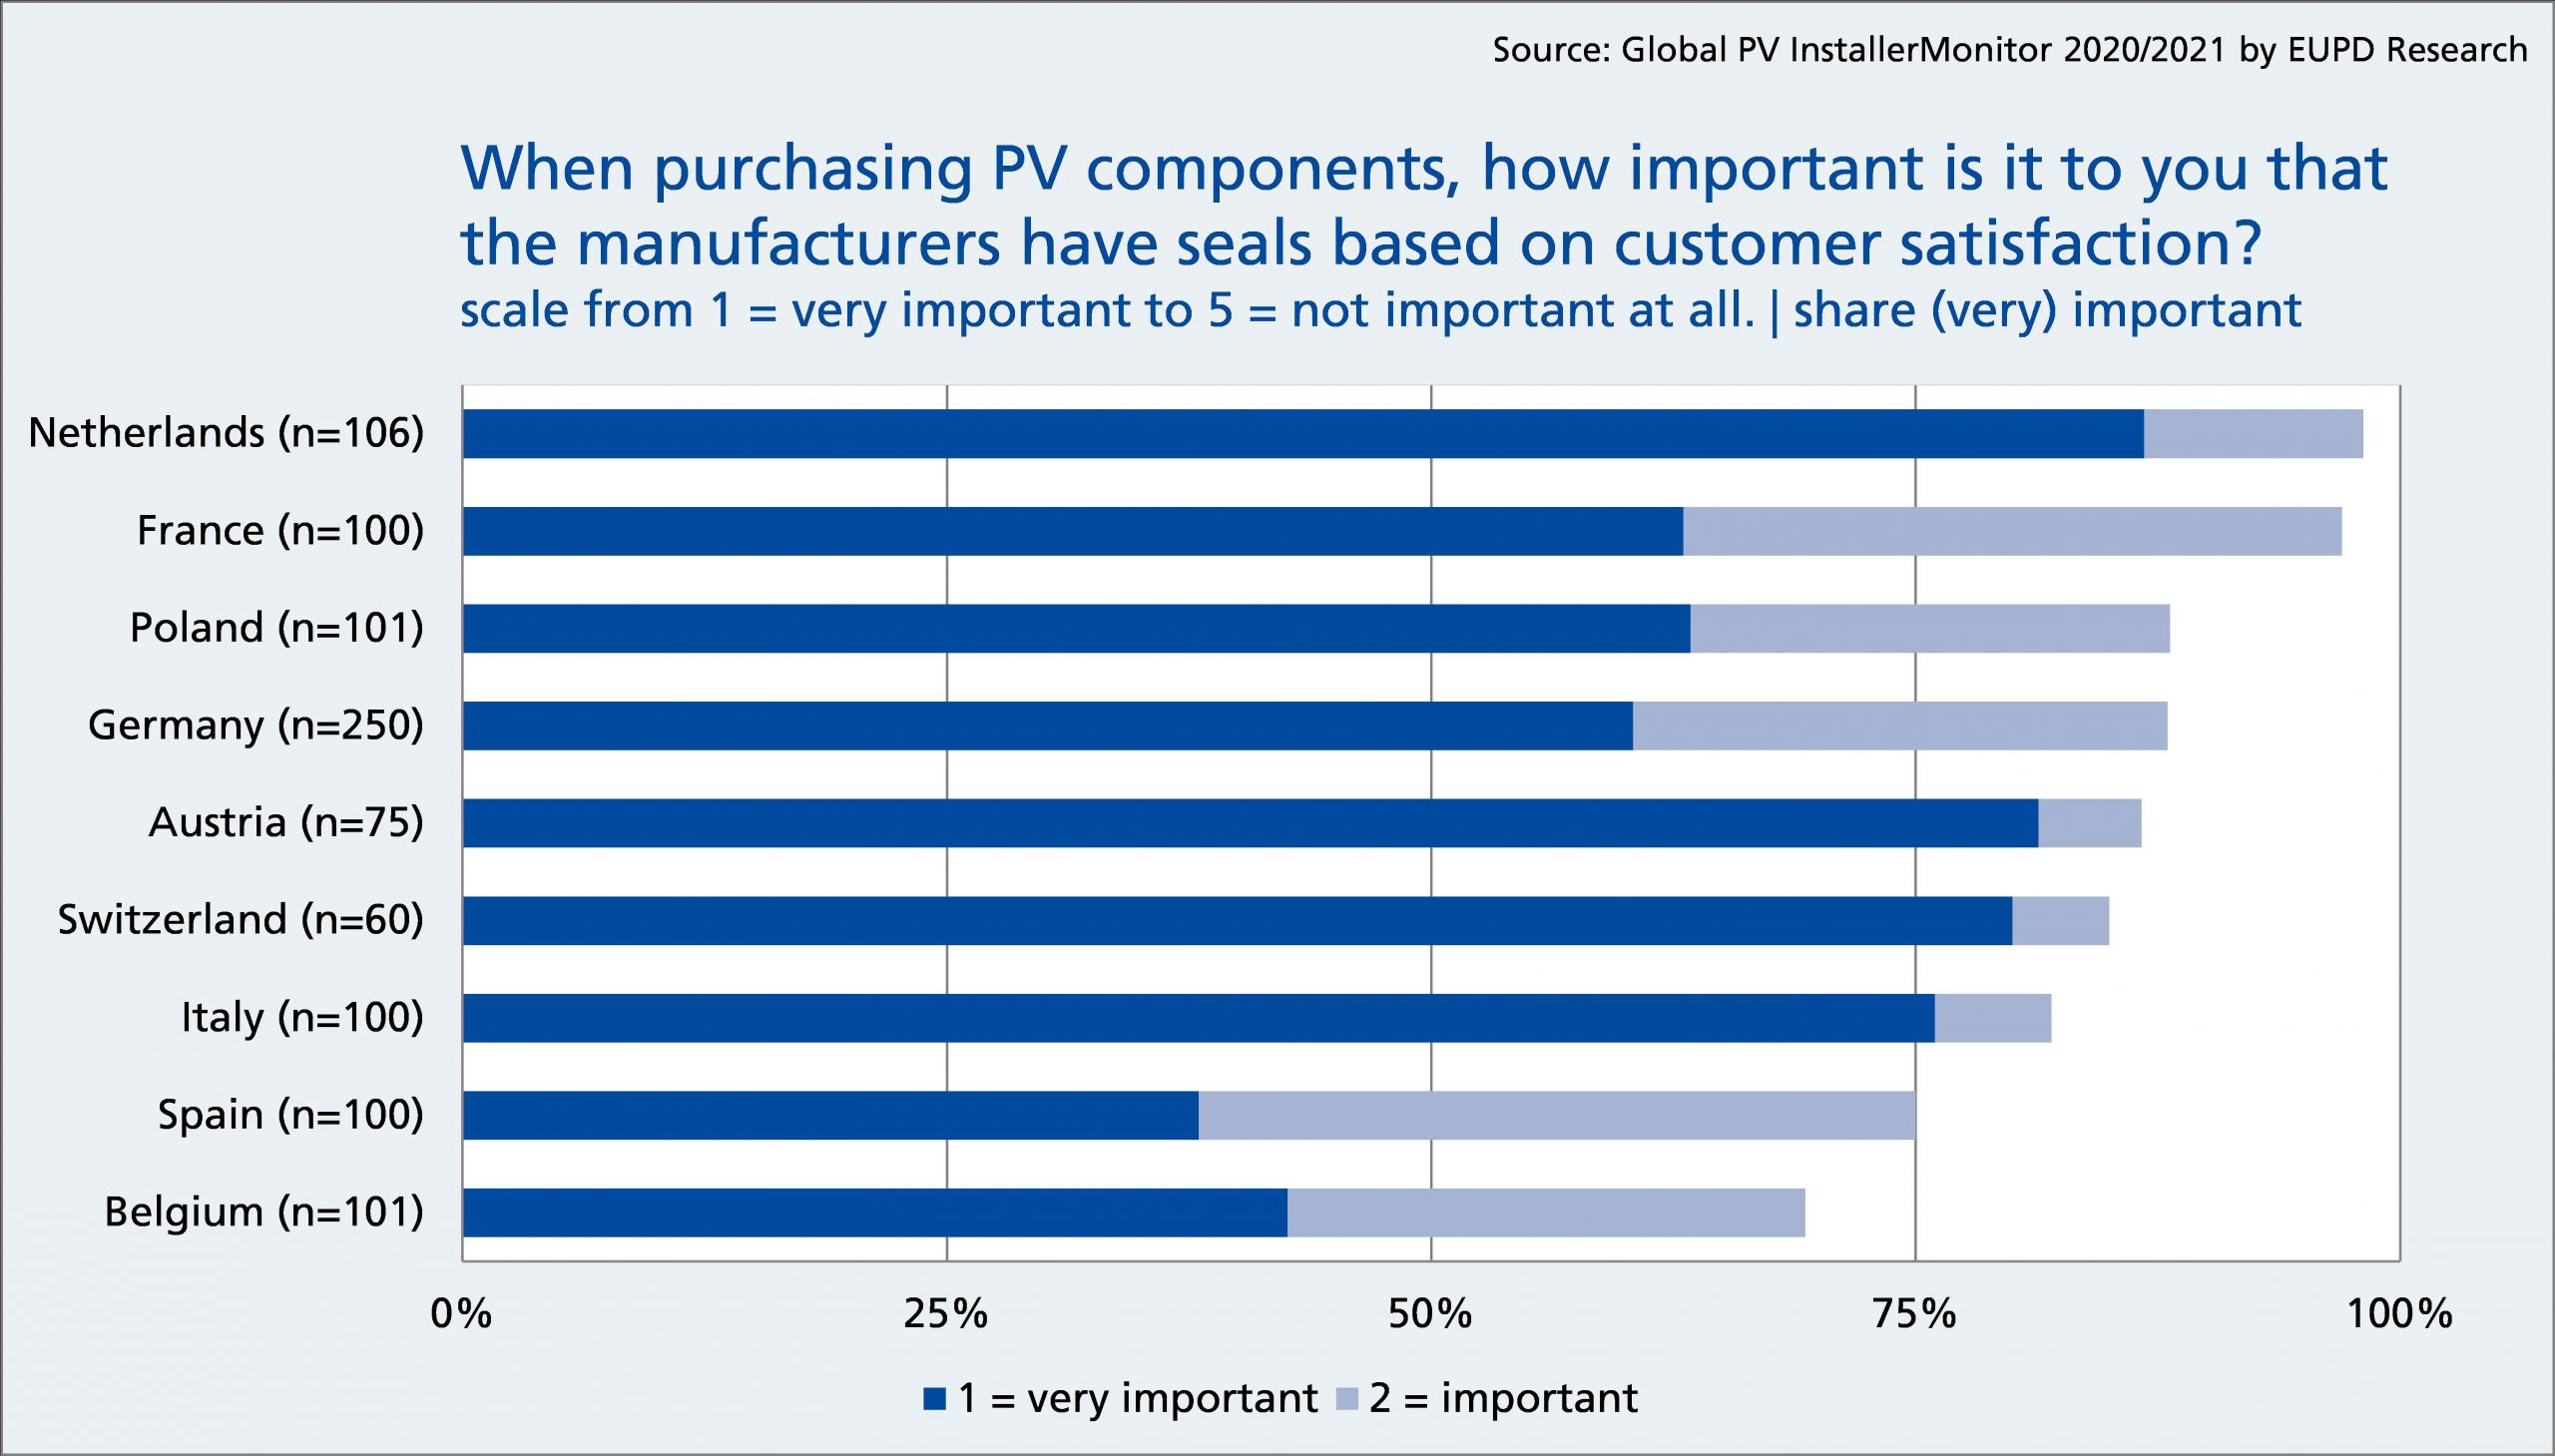 How important is it for you that manufacturers of PV components carry a seal of excellence based on customer satisfaction?